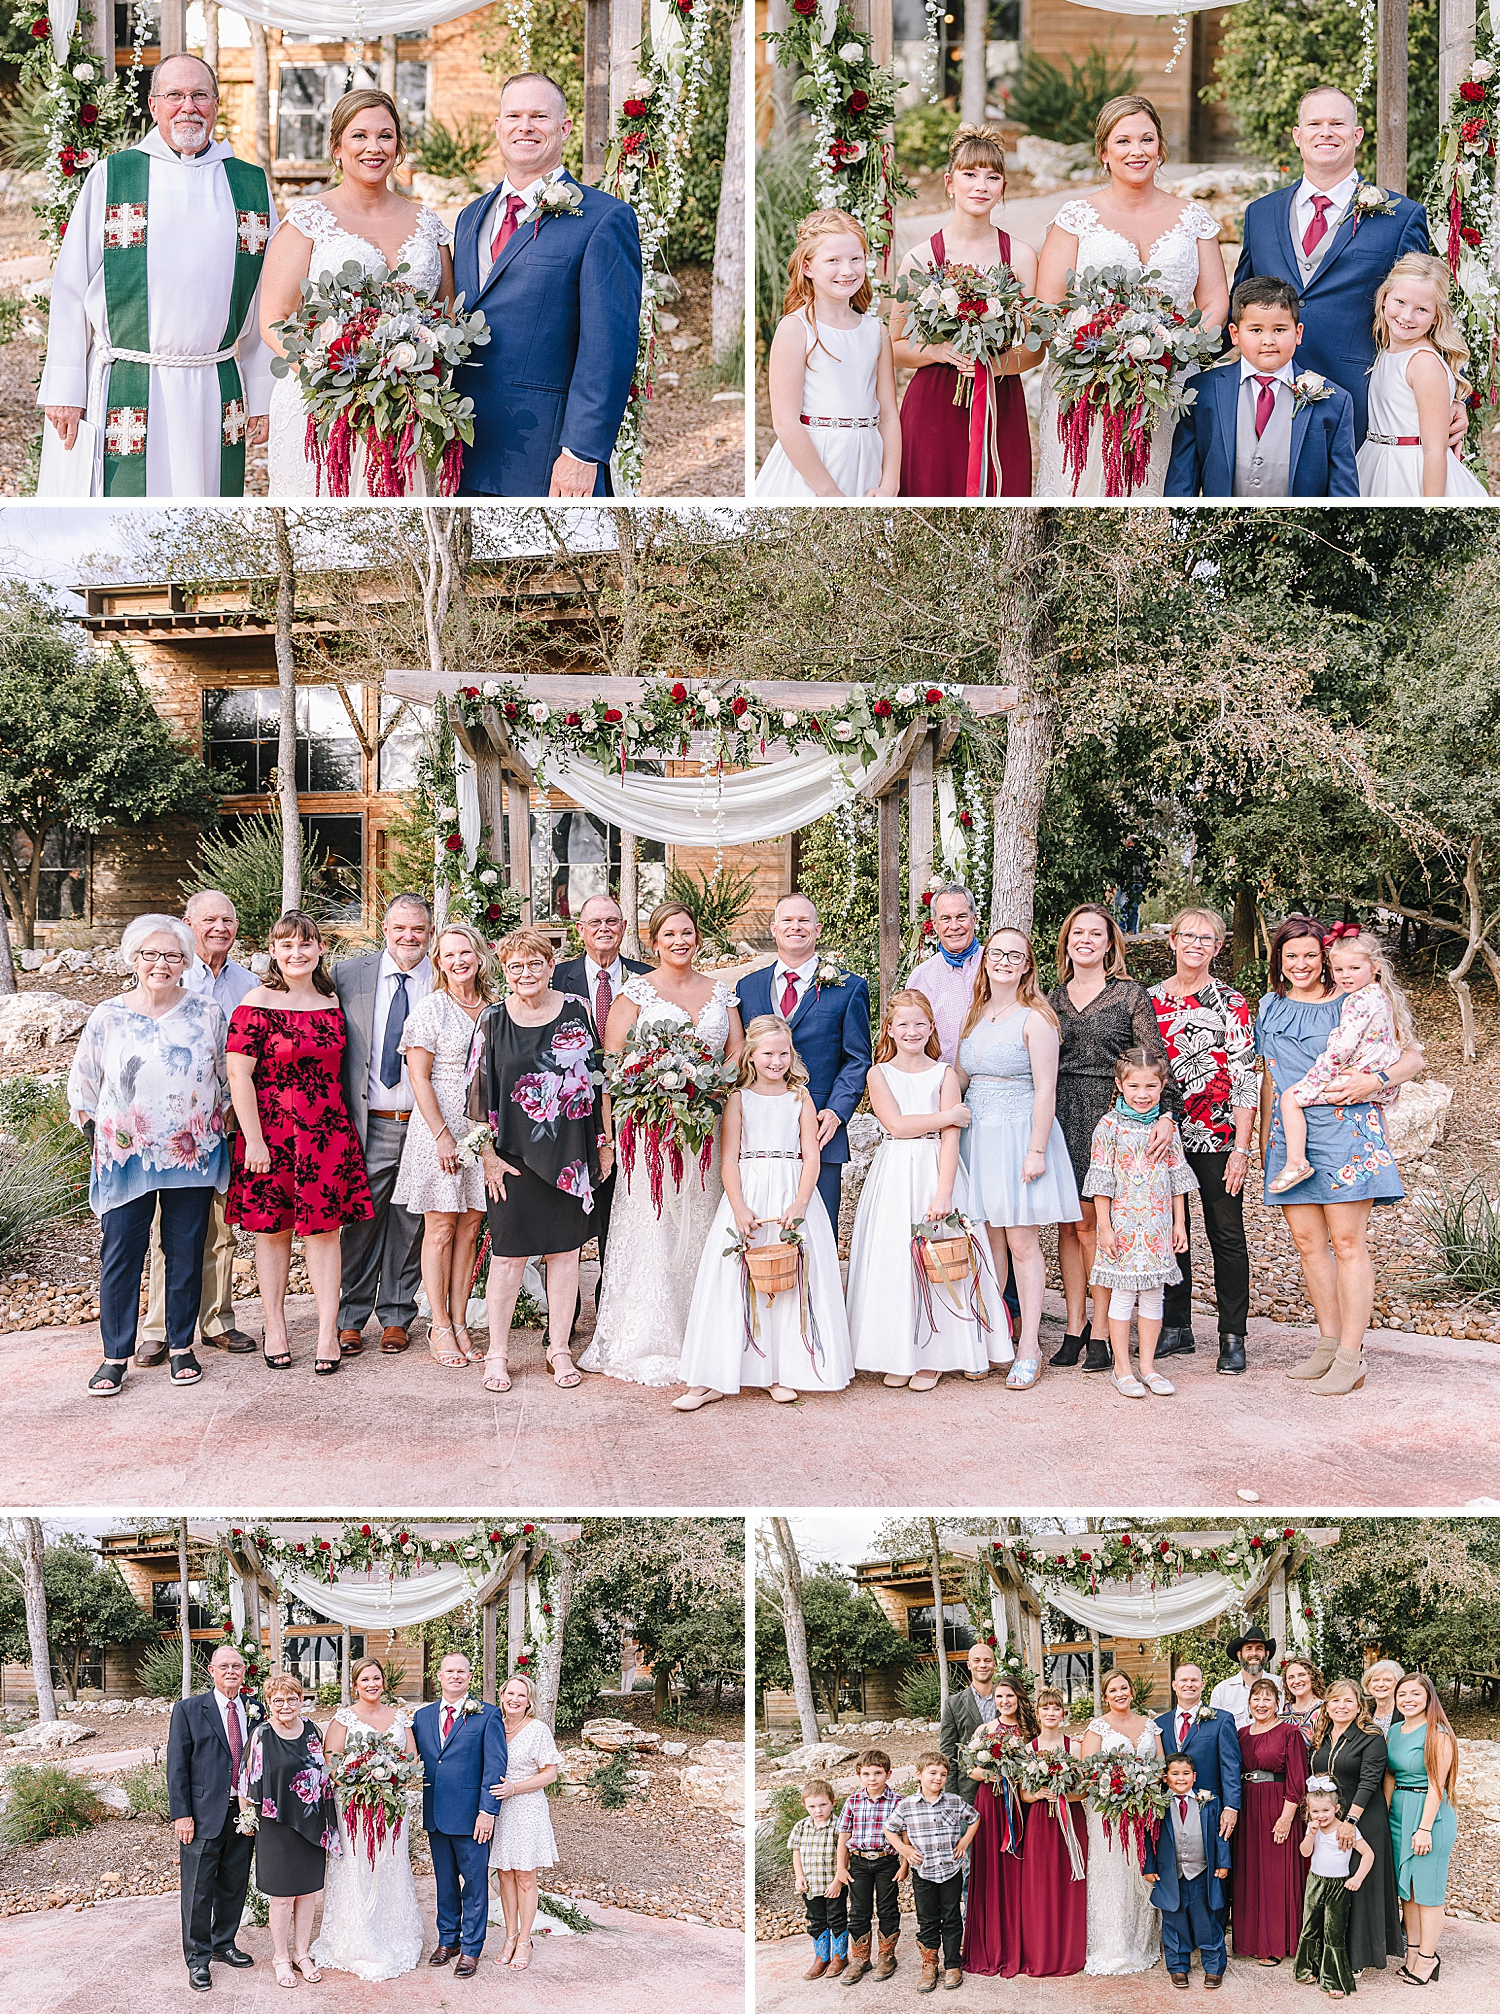 Geronimo-Oaks-Wedding-Venue-Seguin-Texas-Elegant-Navy-Burgundy-Wedding-Carly-Barton-Photography_0044.jpg